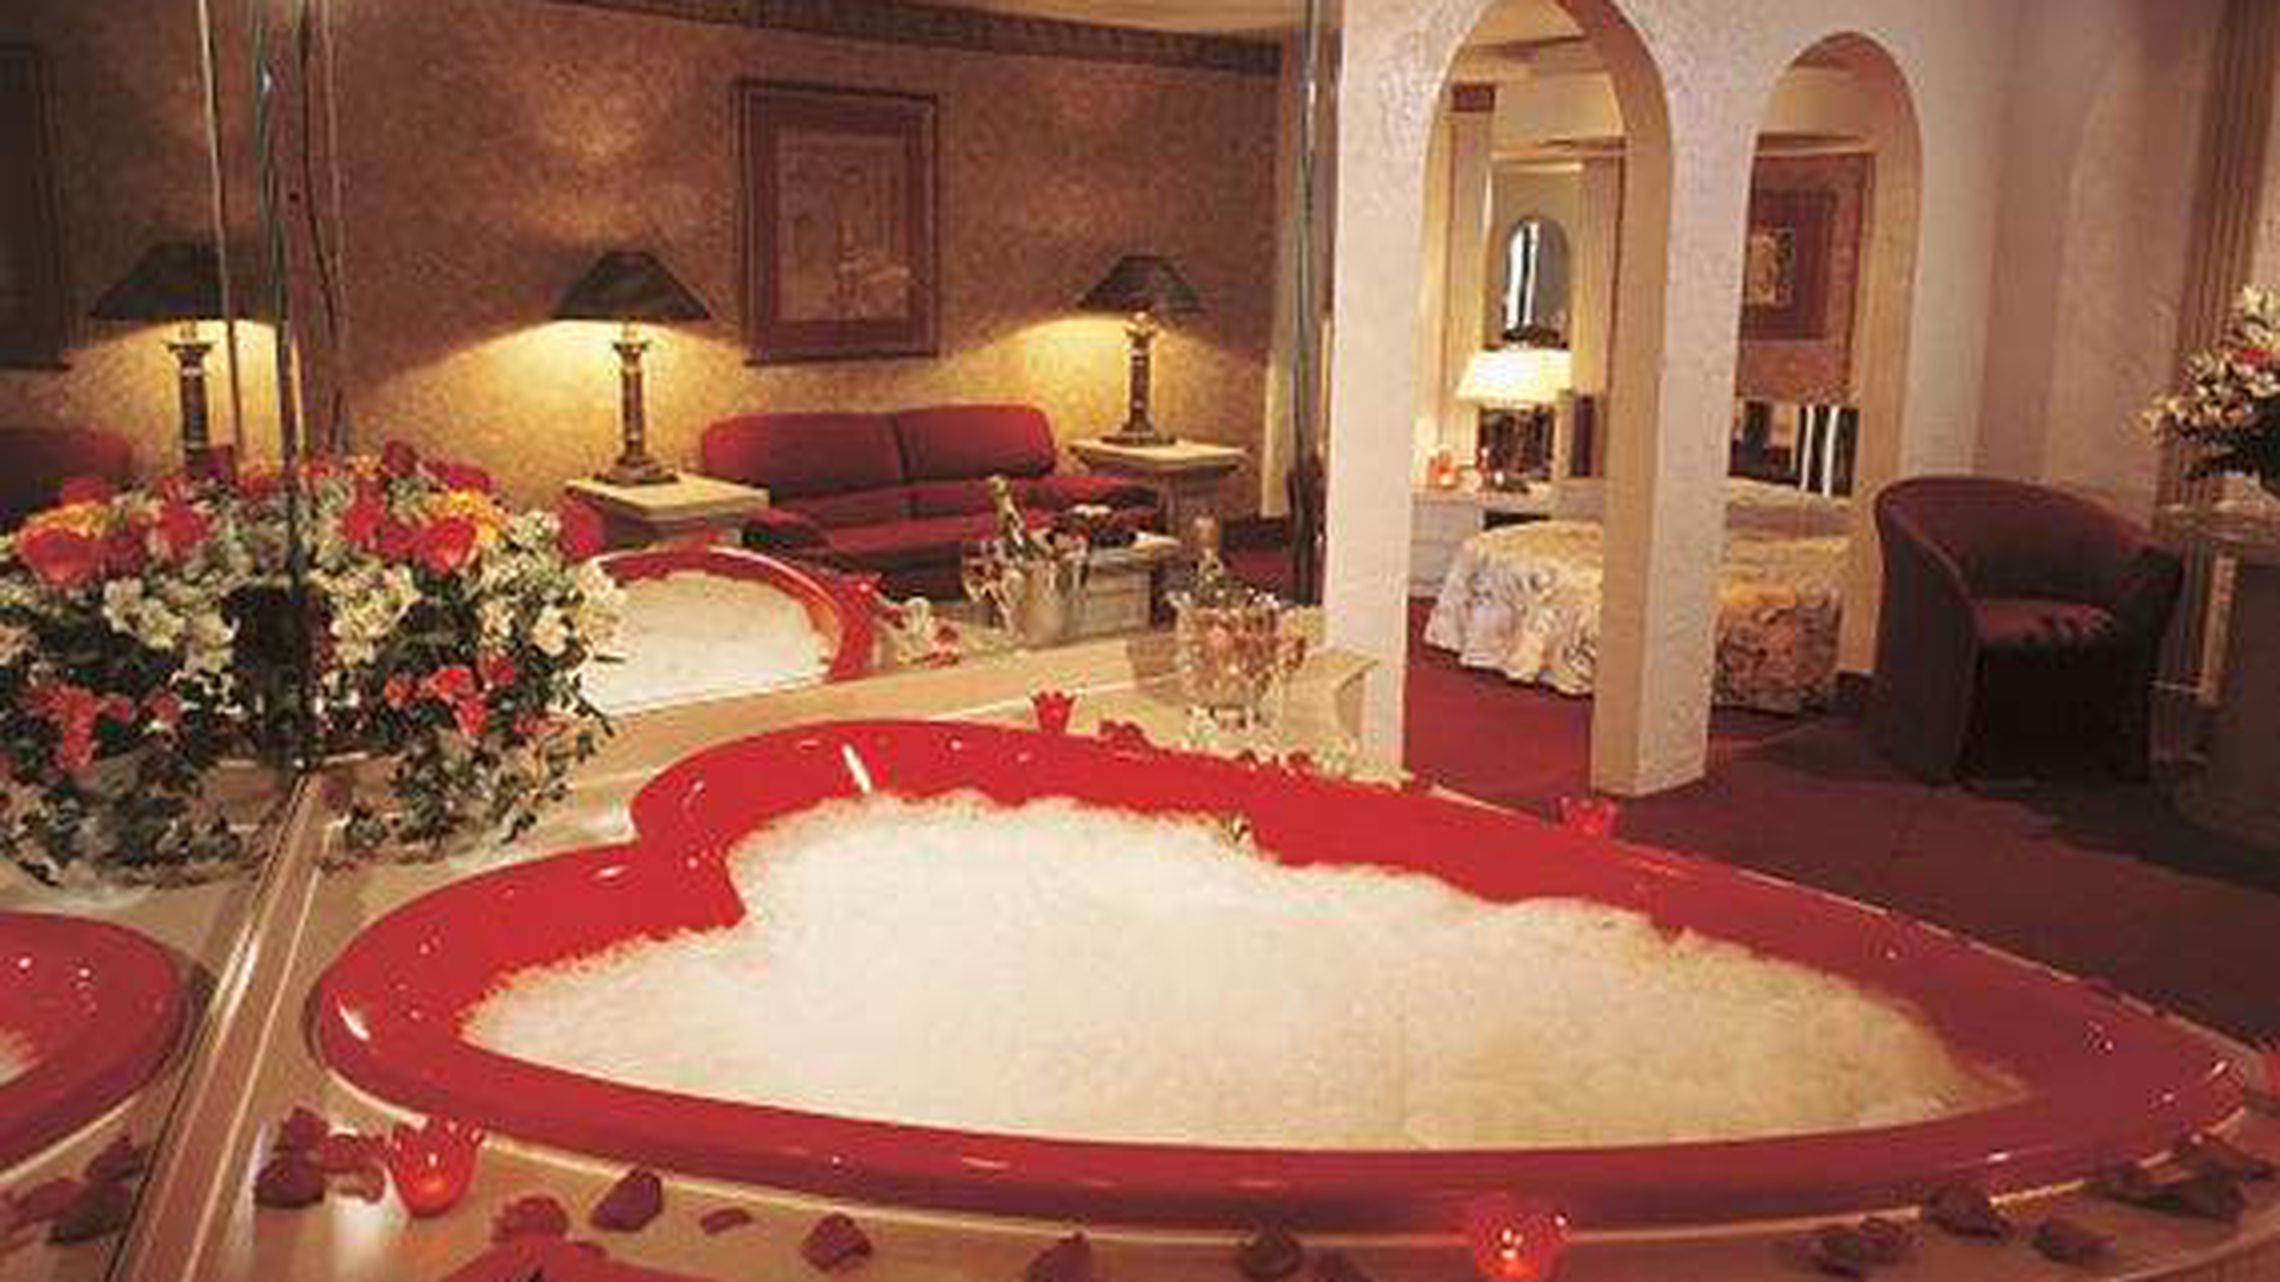 Morris Wilkins The Man Behind The Heart Shaped Tubs That Lured Lovers To The Poconos Dies At Age 90